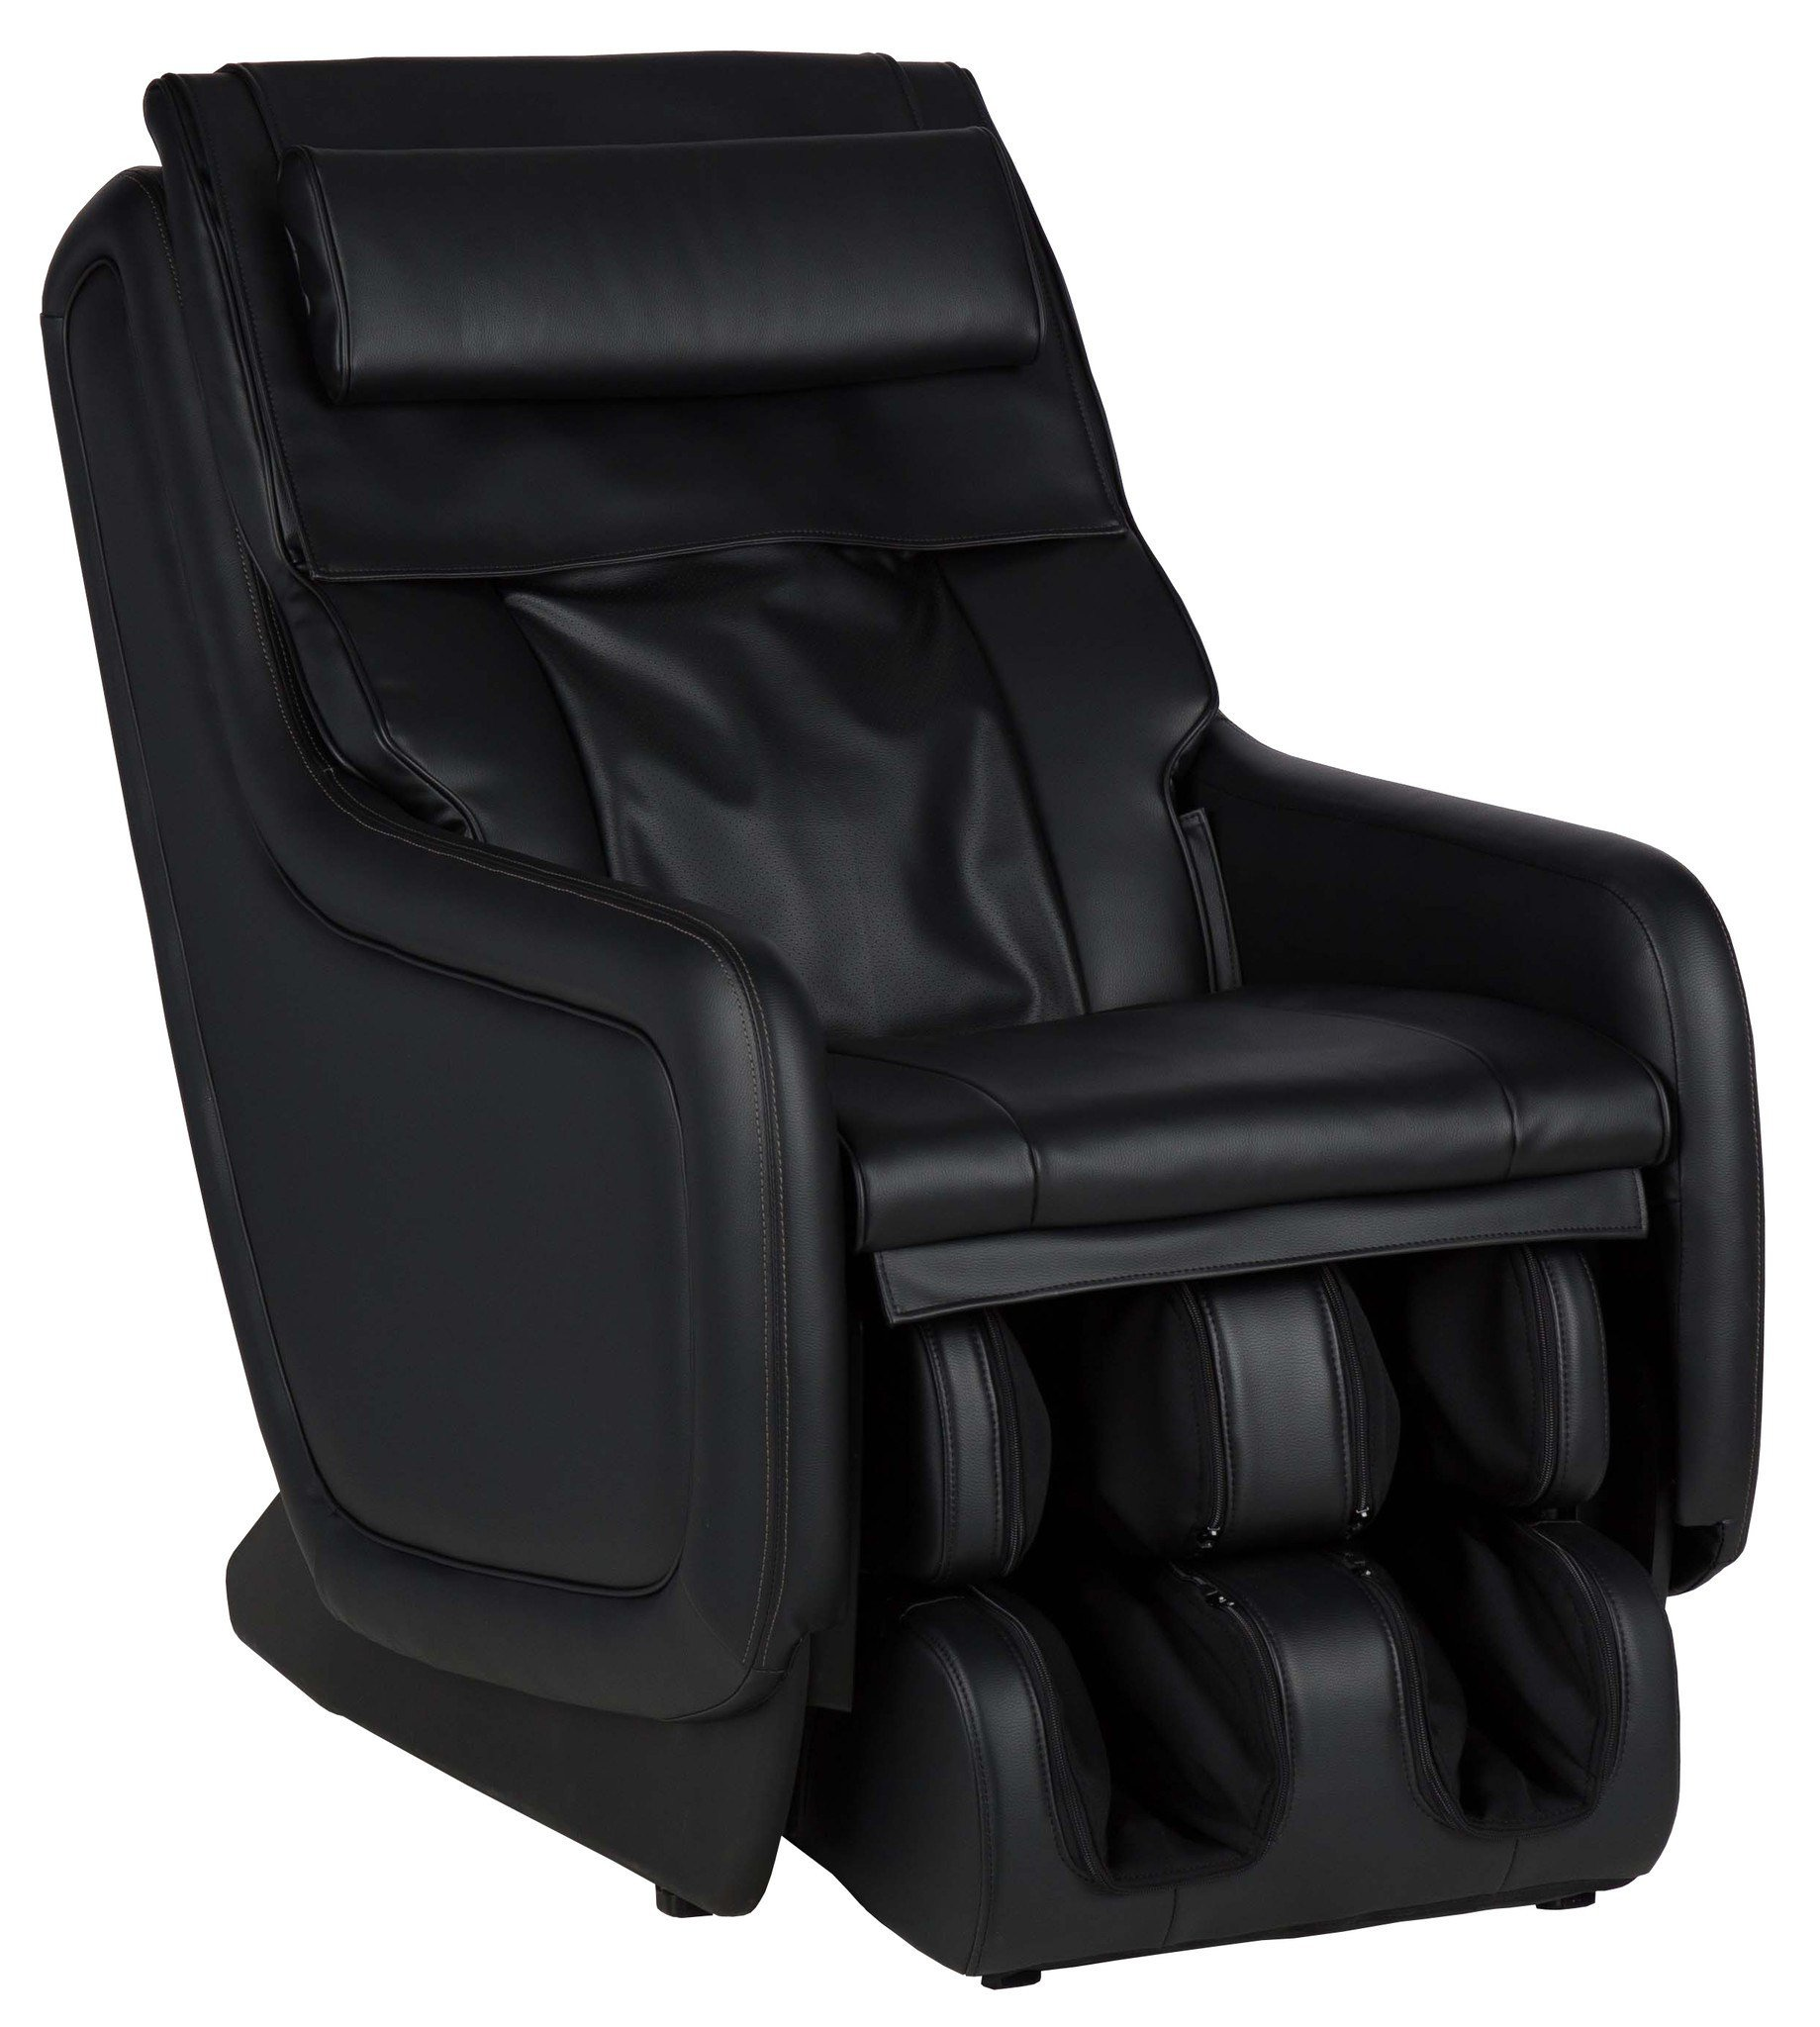 Human Touch ZeroG 5.0 Massage Chair Massage chair